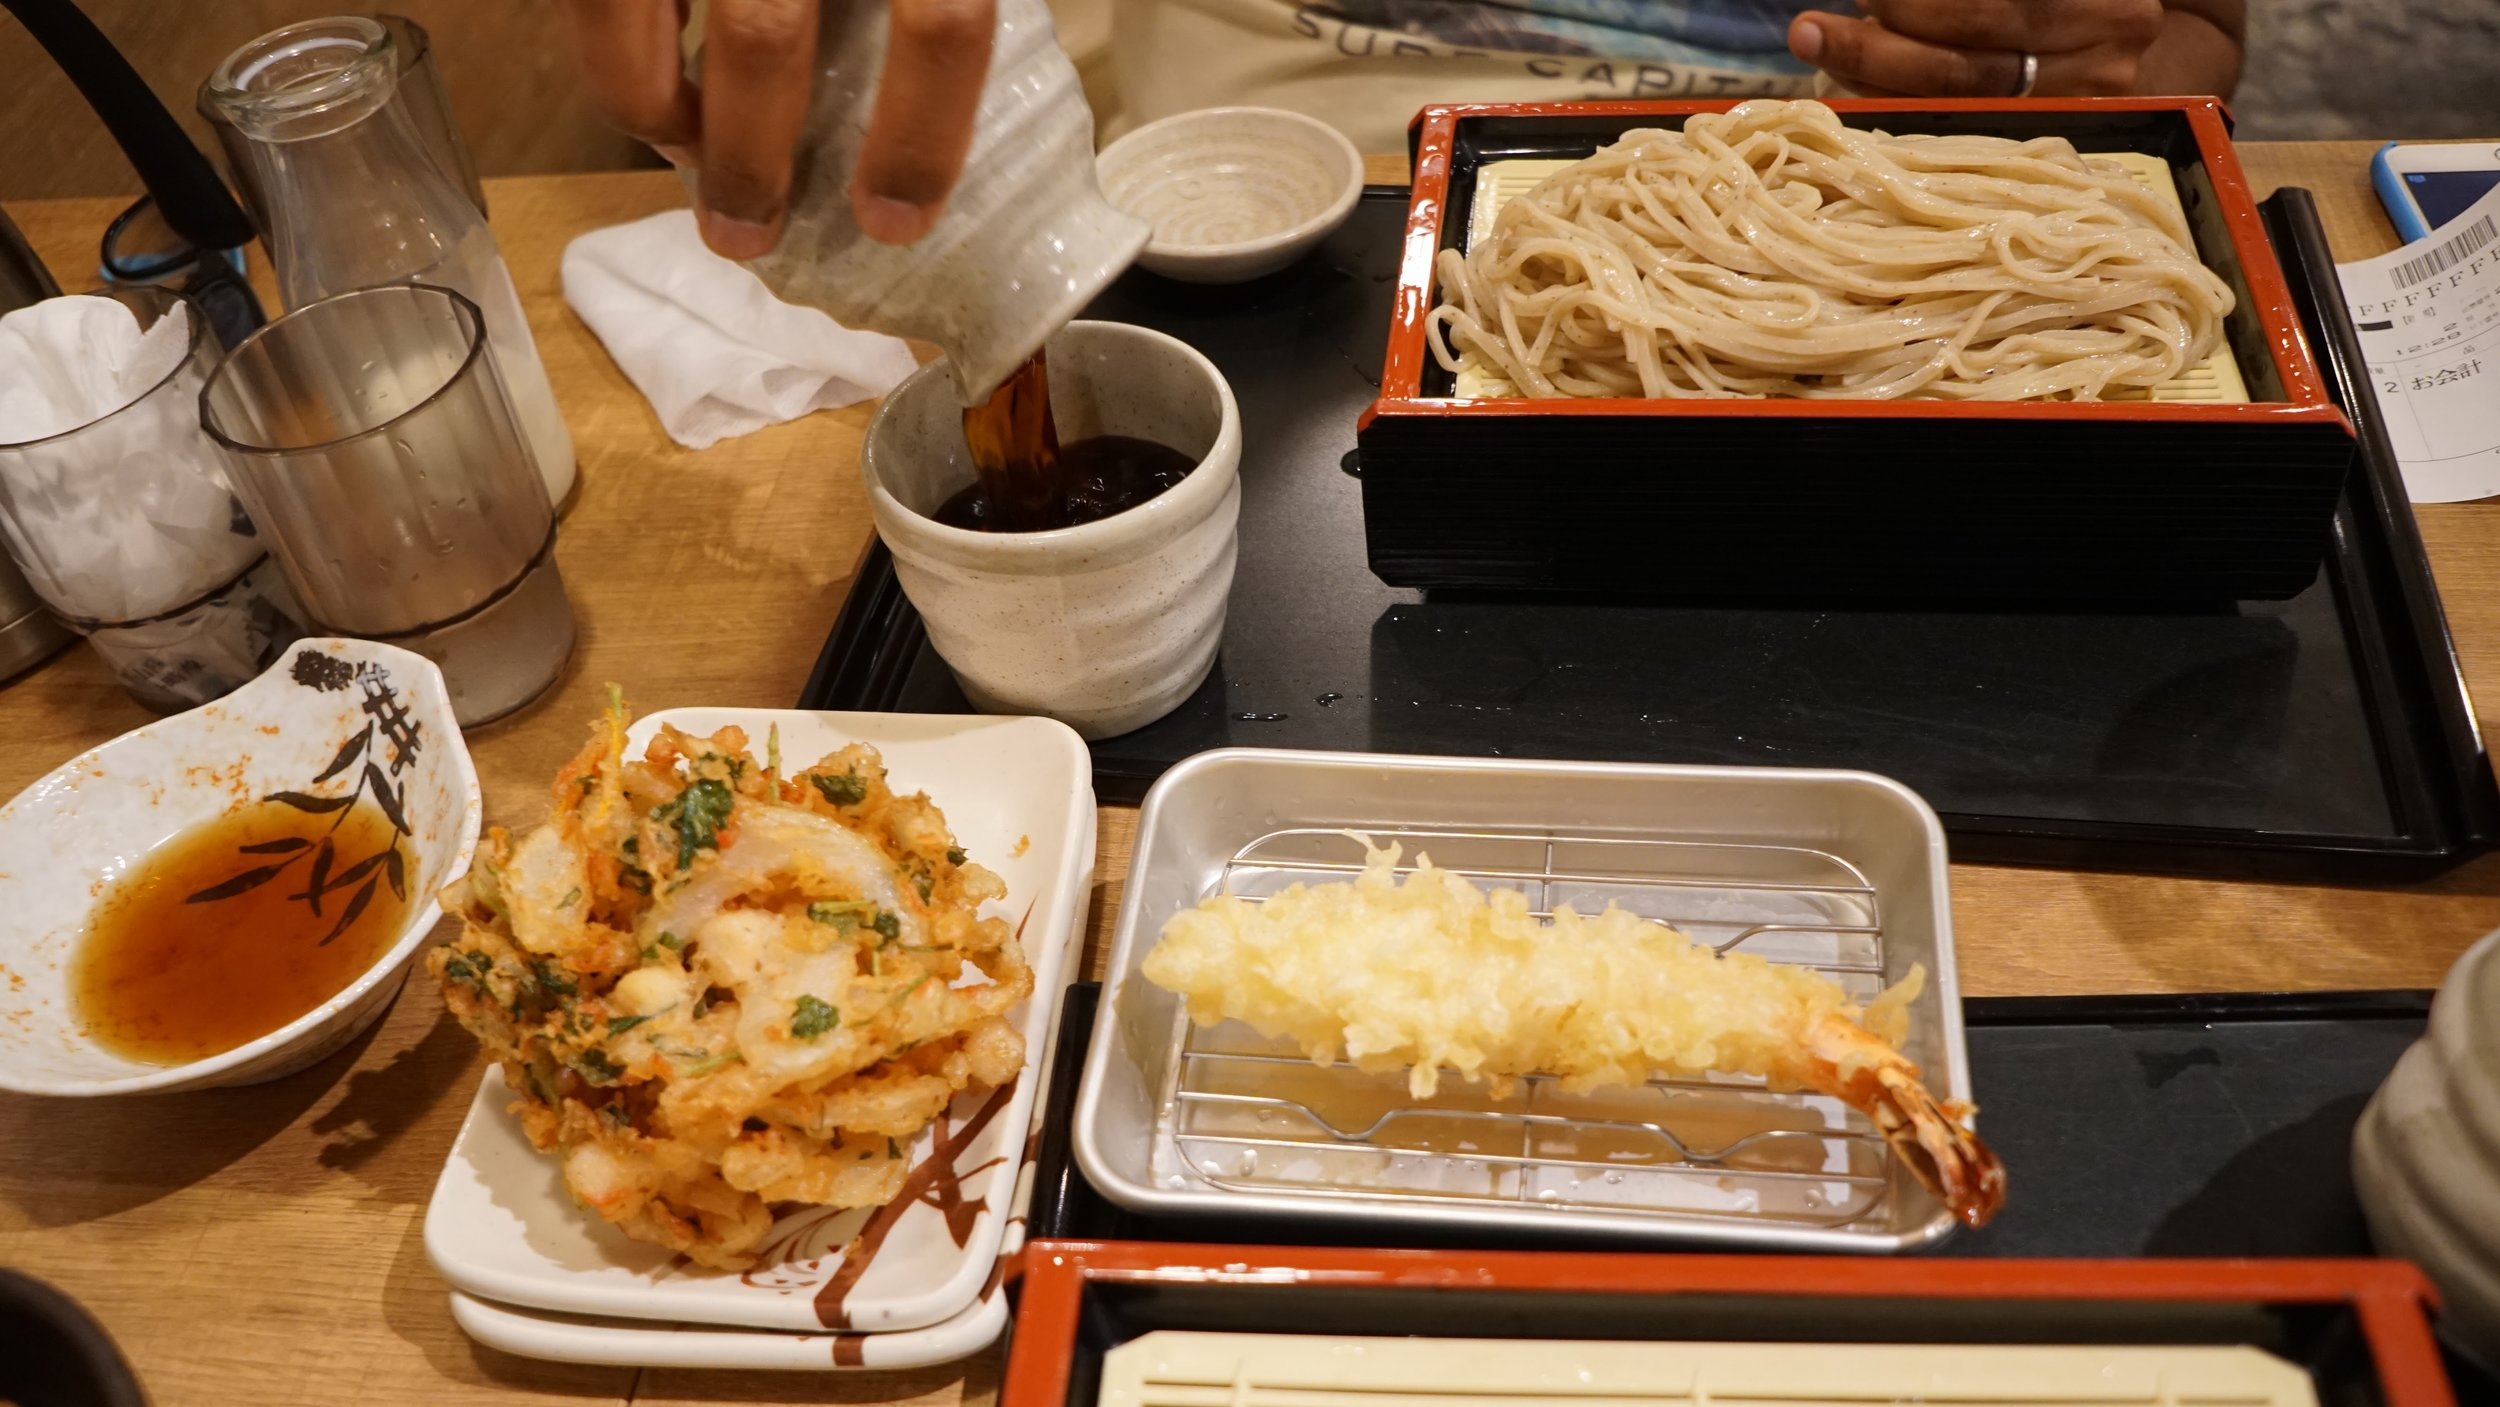 Lunch for four:soba, tempura, a bowl of rice and pork was less than 2000 yen at Omiya, Saitama (40 kms from Central Tokyo).